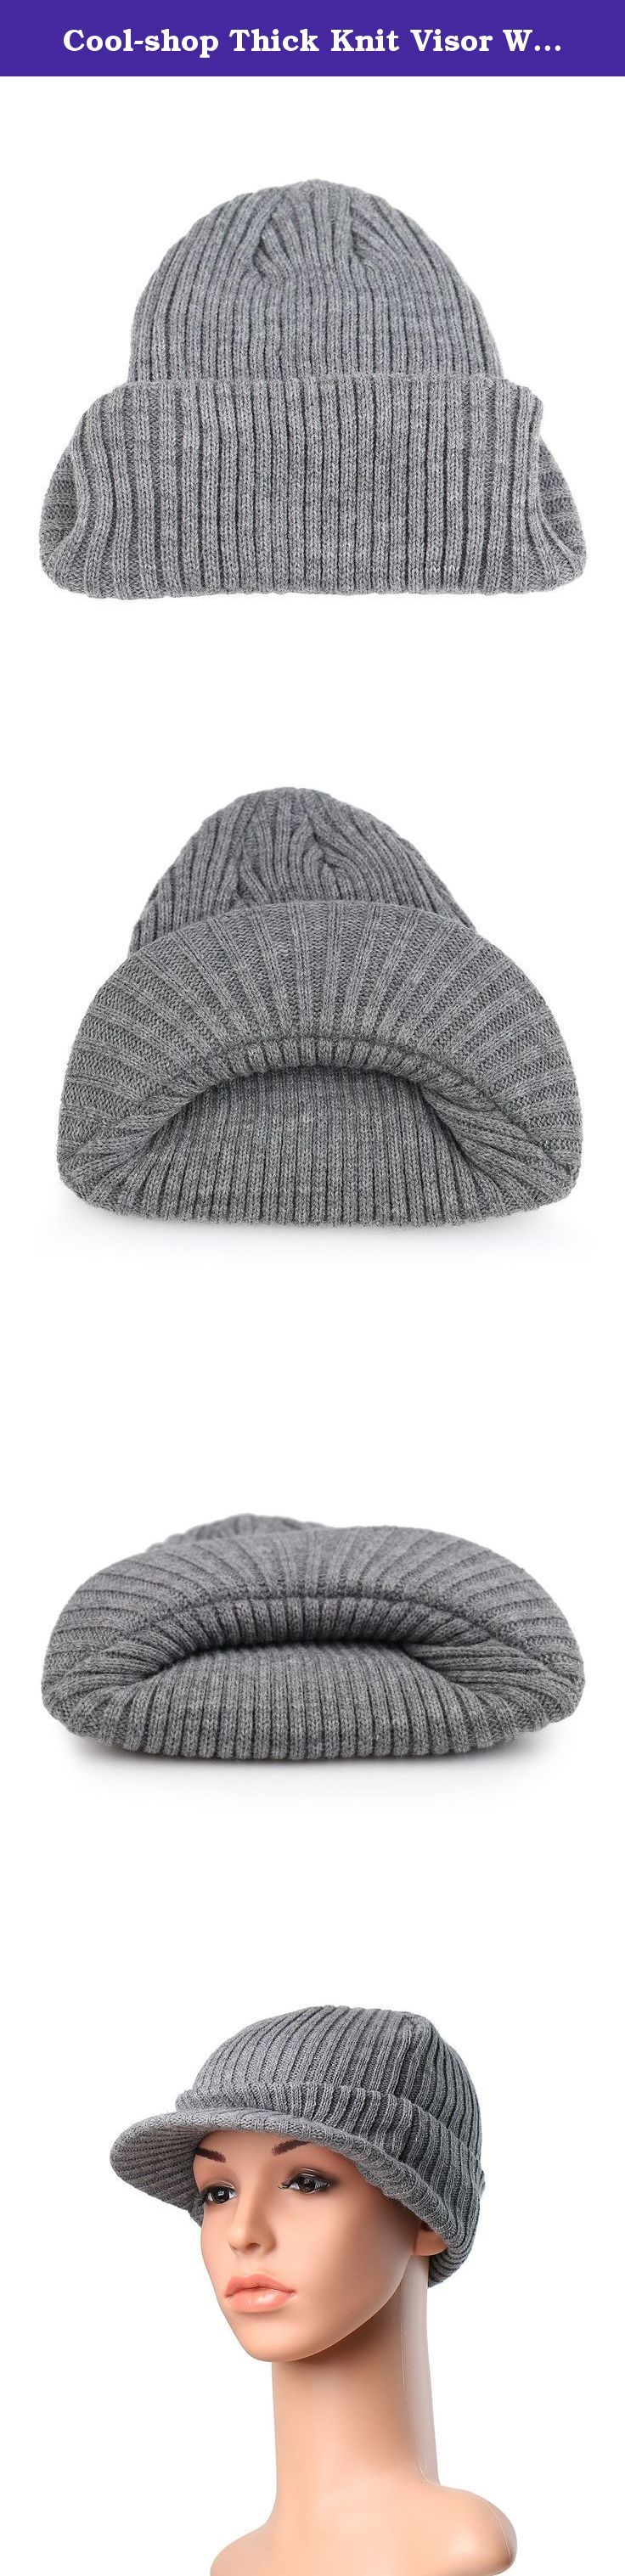 Cool-shop Thick Knit Visor Warm Hat Cuff Beanie for Male and Female(Gray). Product Description This characteristic beanie has a distinctive pattern that will make you look and feel pretty well. It has a pre-curved soft visor. This soft beanie hat is great for the winter or everyday wear. The strong construction makes it warm, comfortable and durable.